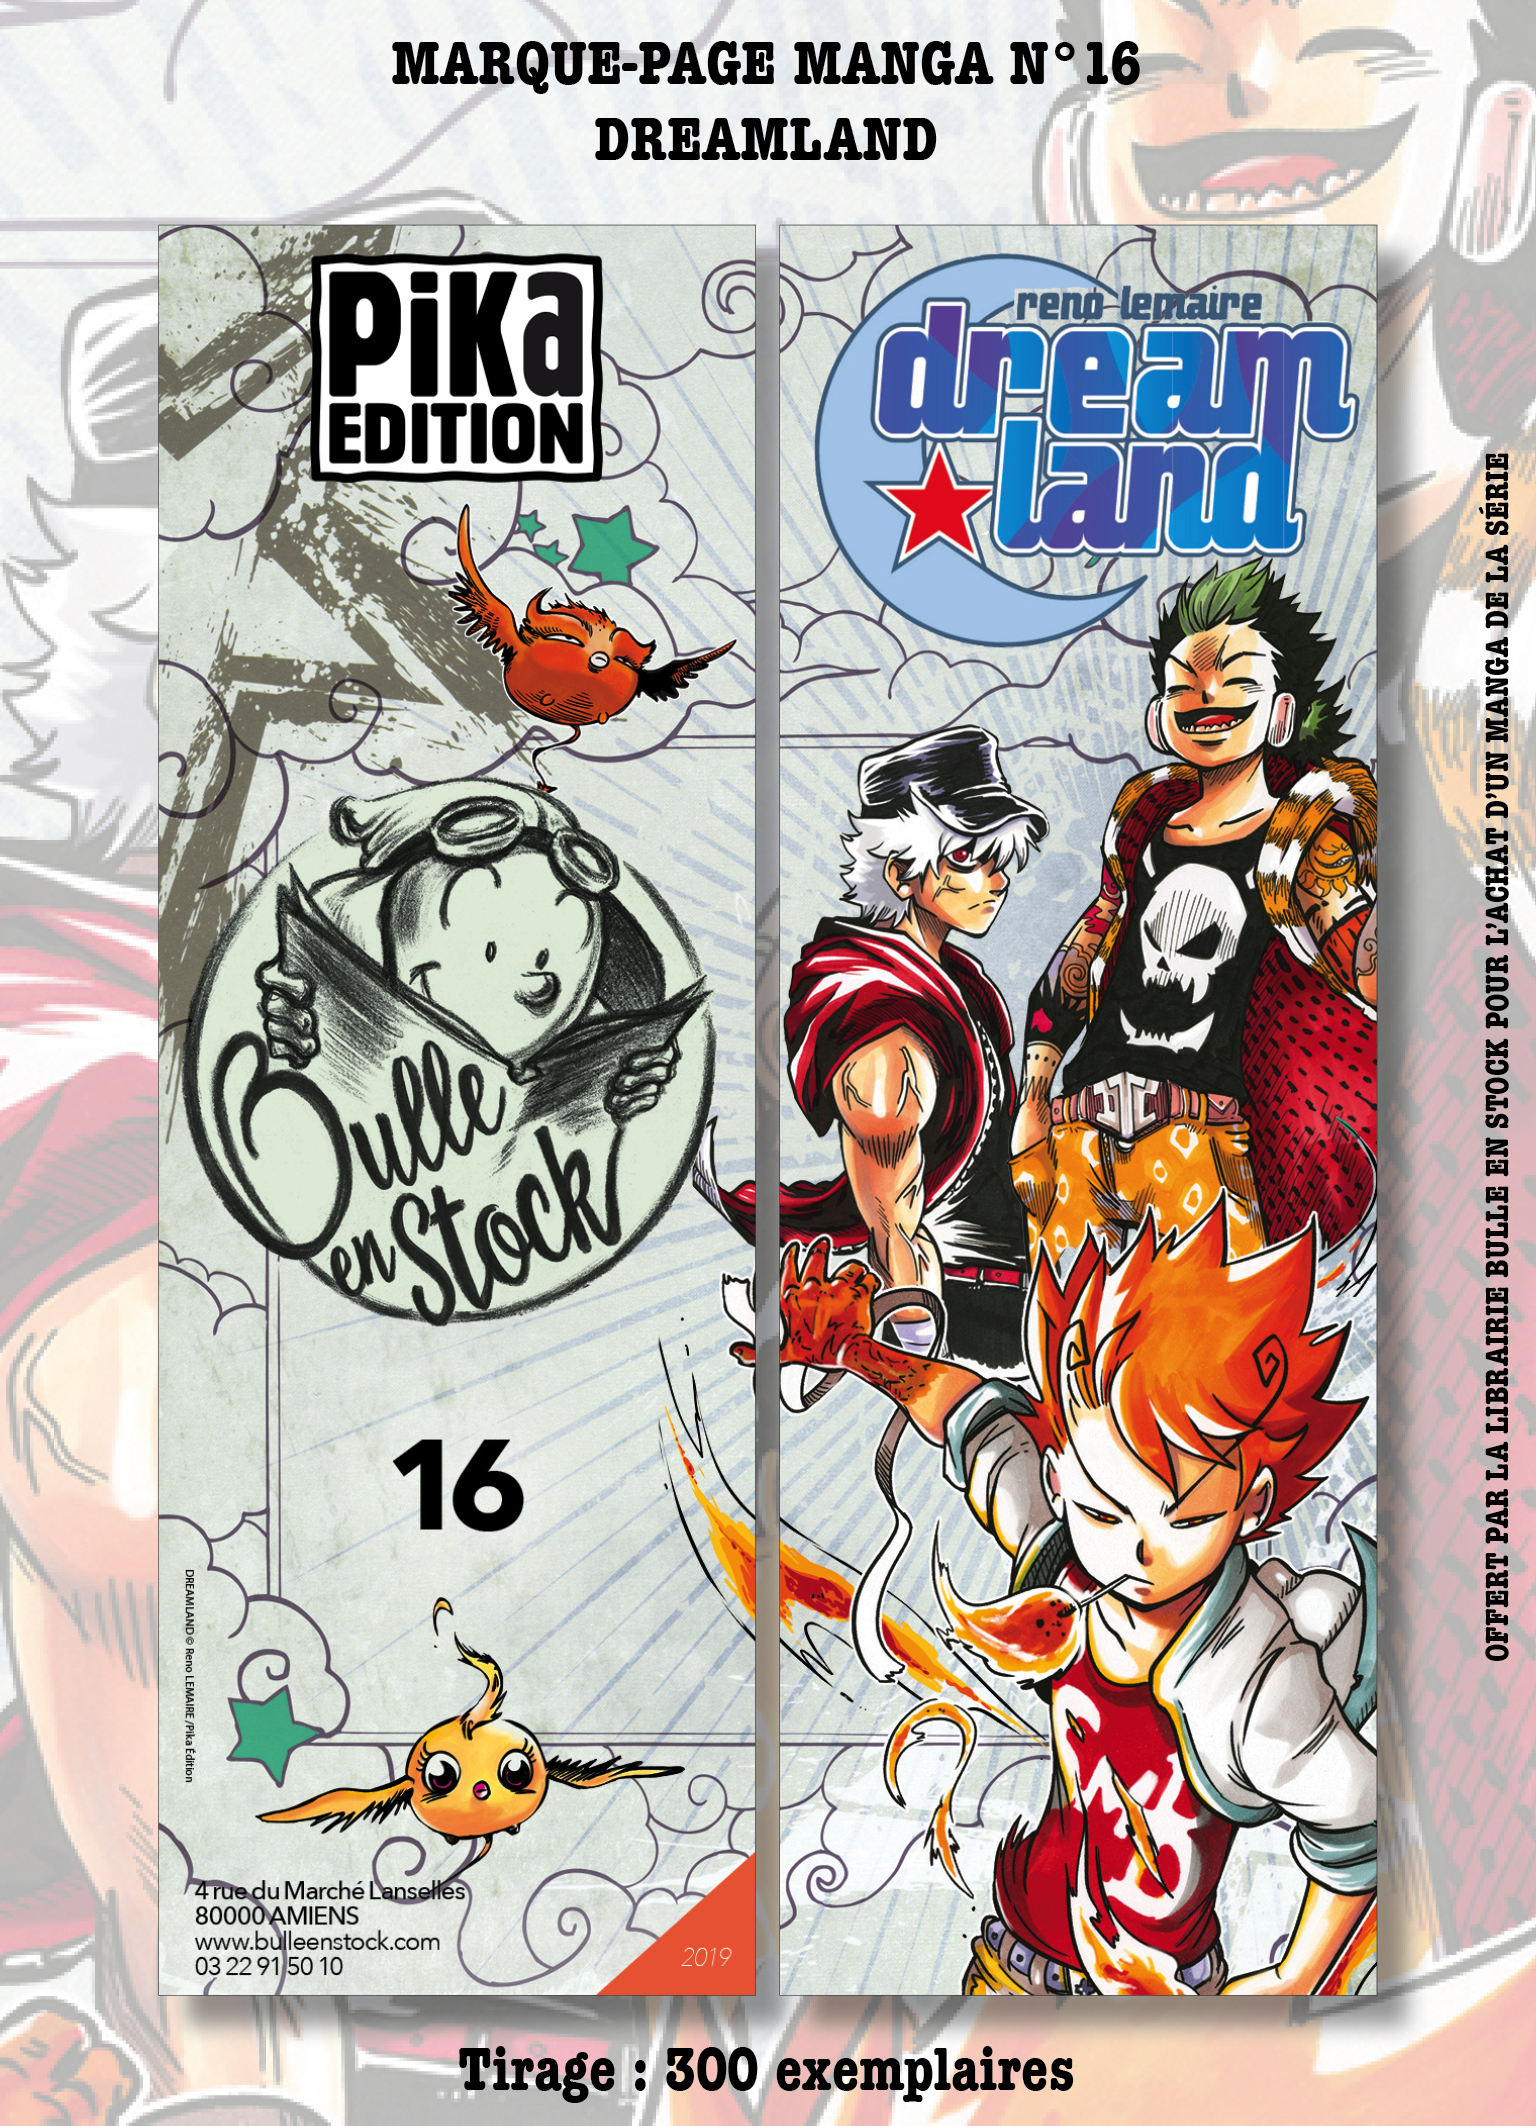 Marque-pages Manga Luxe Bulle en Stock 16 - n°16 - Dreamland